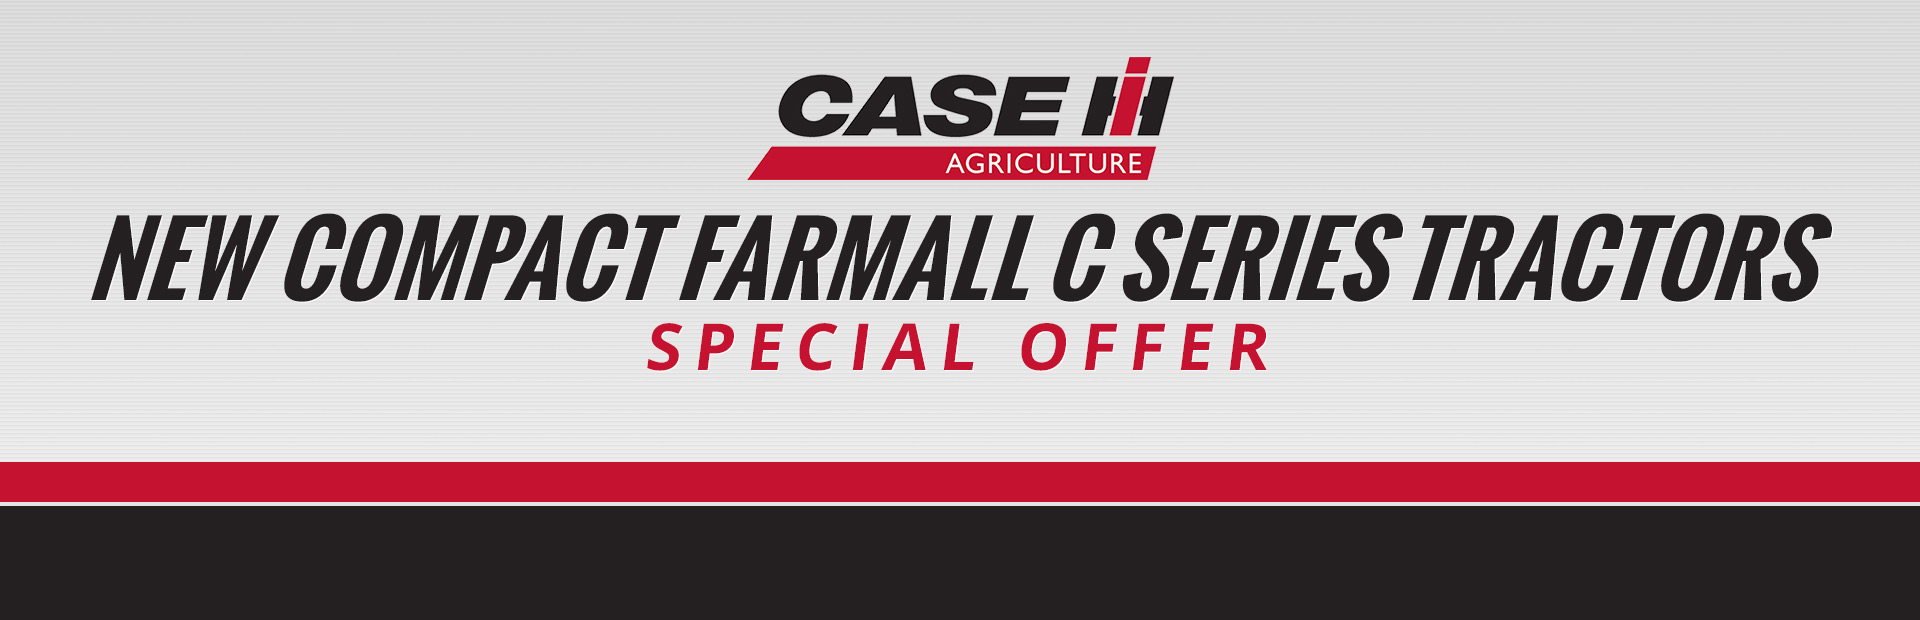 Case IH: New Compact Farmall C Series Special Offer